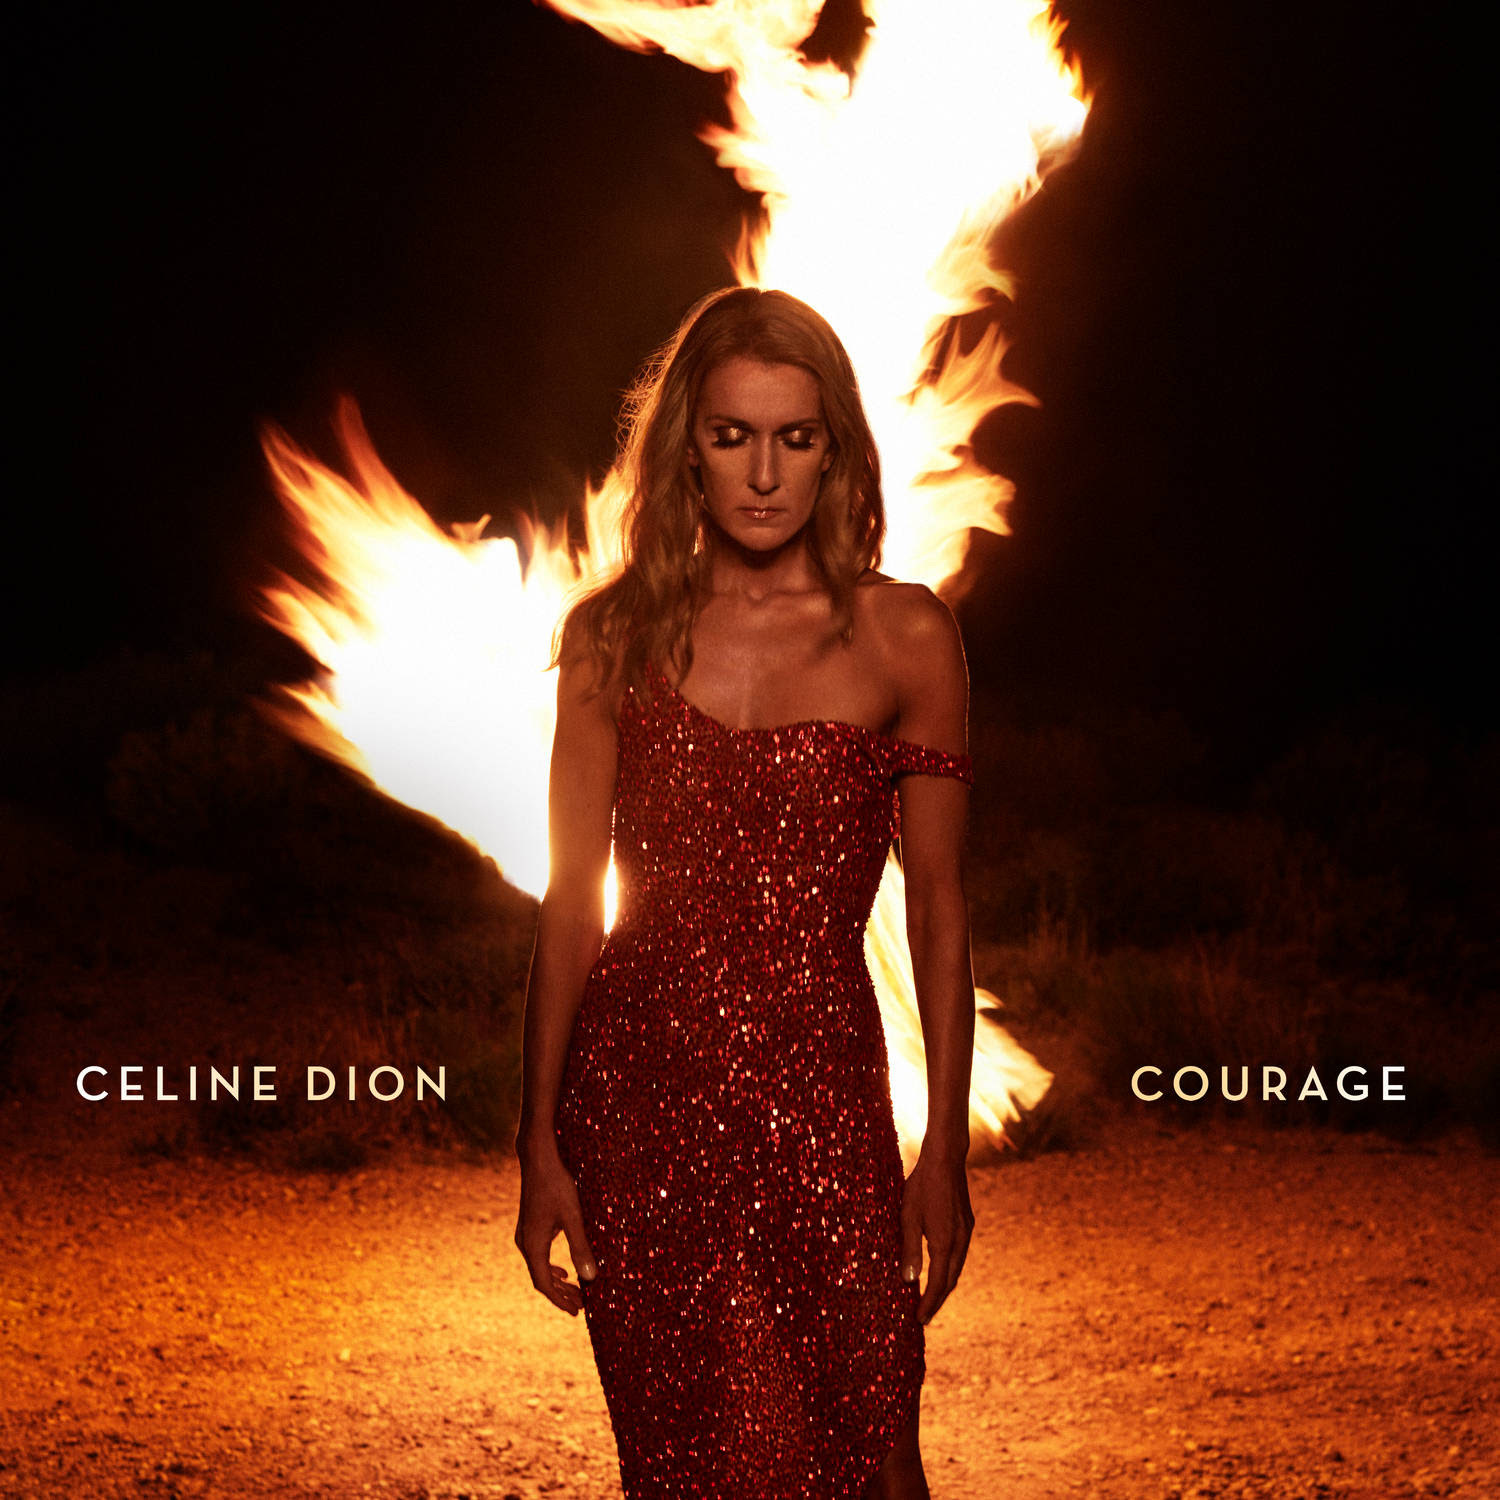 Courage [Deluxe Edition] by Celine Dion image